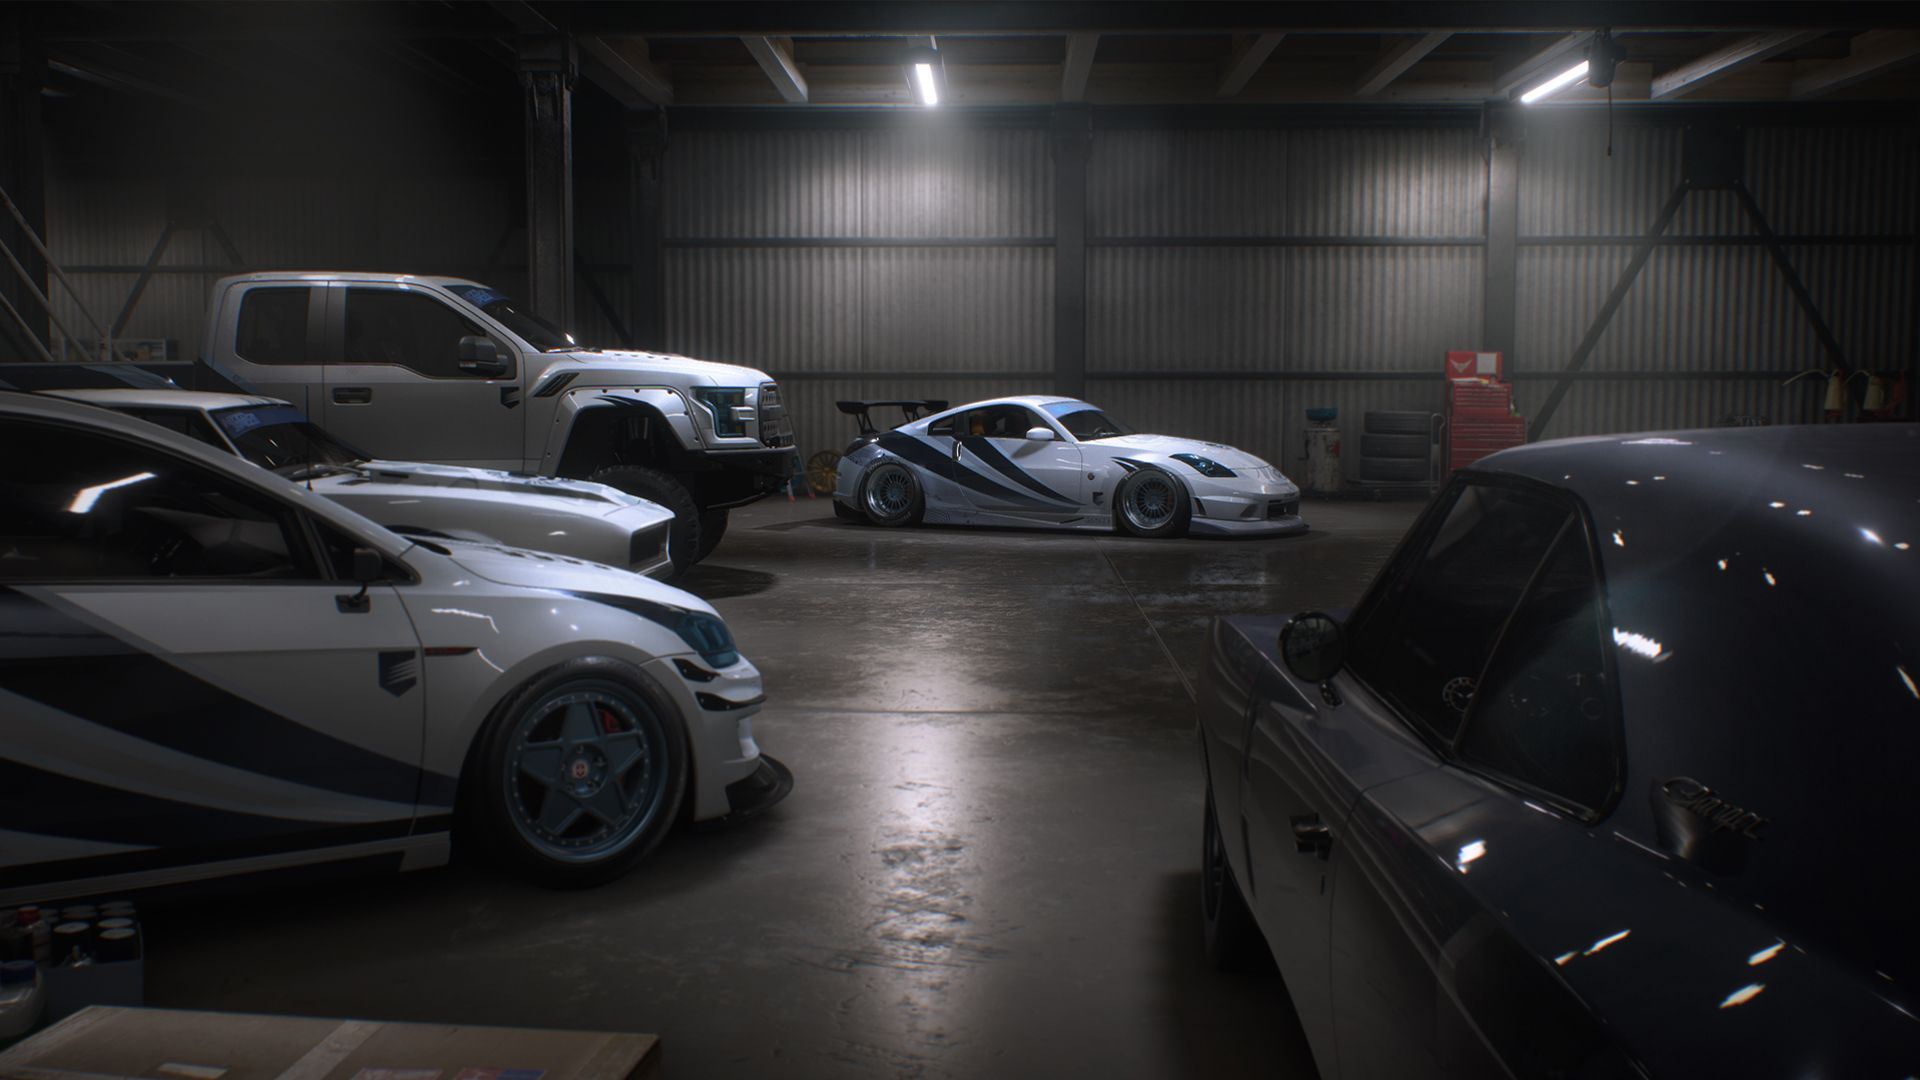 Preorder_Garage_screenshot_1080.jpg